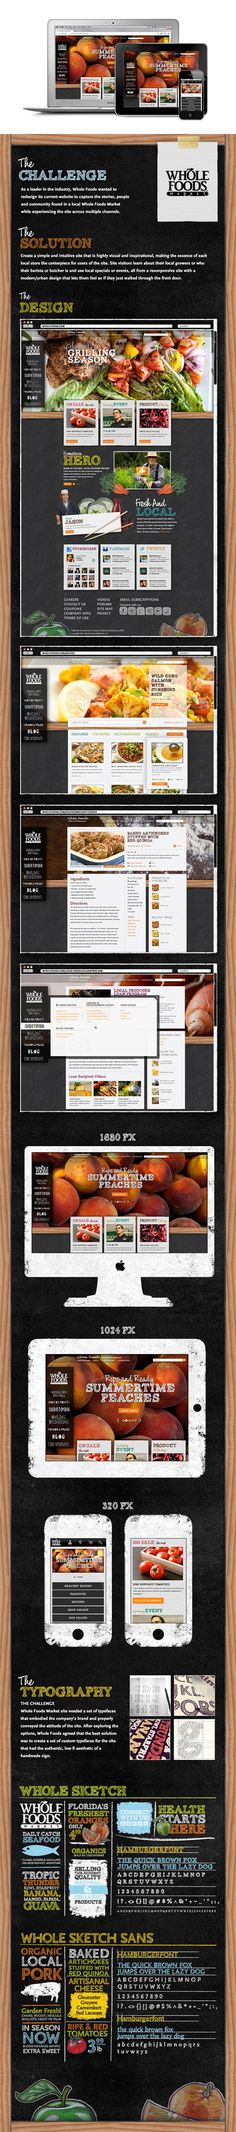 WholeFoodsMarket.com Redesign by Chris Klee, via Behance *** As a leader in the industry, Whole Foods wanted to redesign its current website to capture the stories, people and community found in a local Whole Foods Market while experiencing the site across multiple channels.